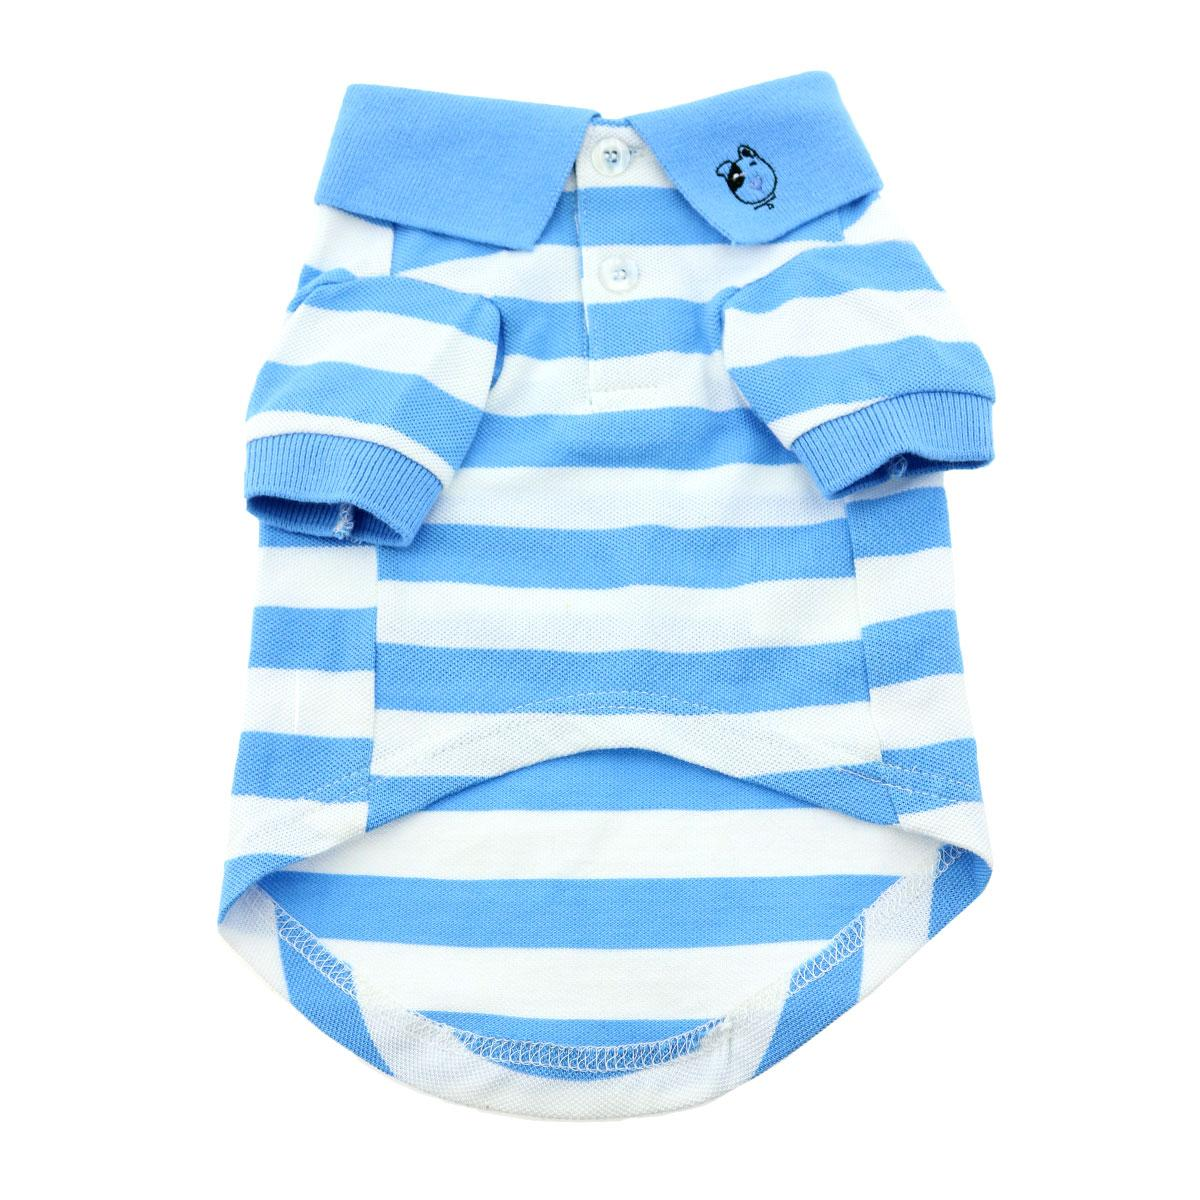 Doggie Design Polo Shirt for Dogs, Striped Blue Niagra & White, XX-Large